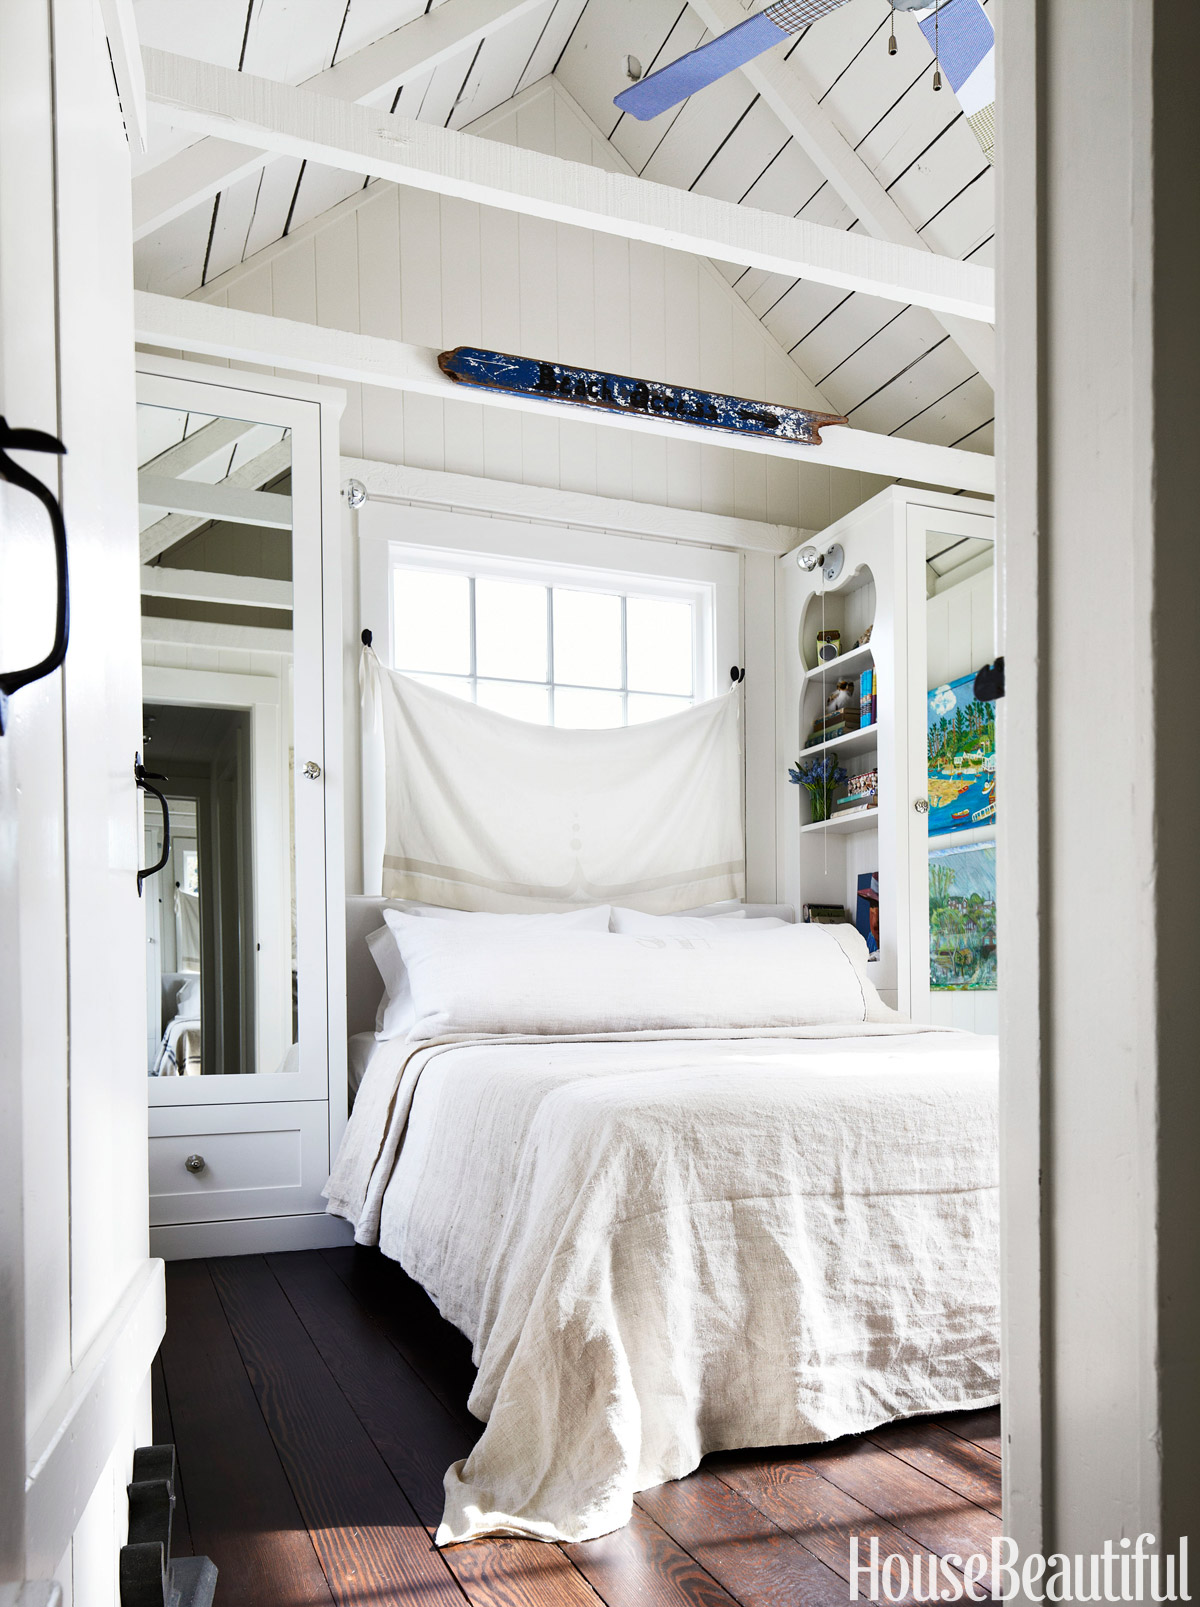 10+ Small Bedroom Decorating Ideas - Design Tips for Tiny ... on Small Room Decoration  id=35921